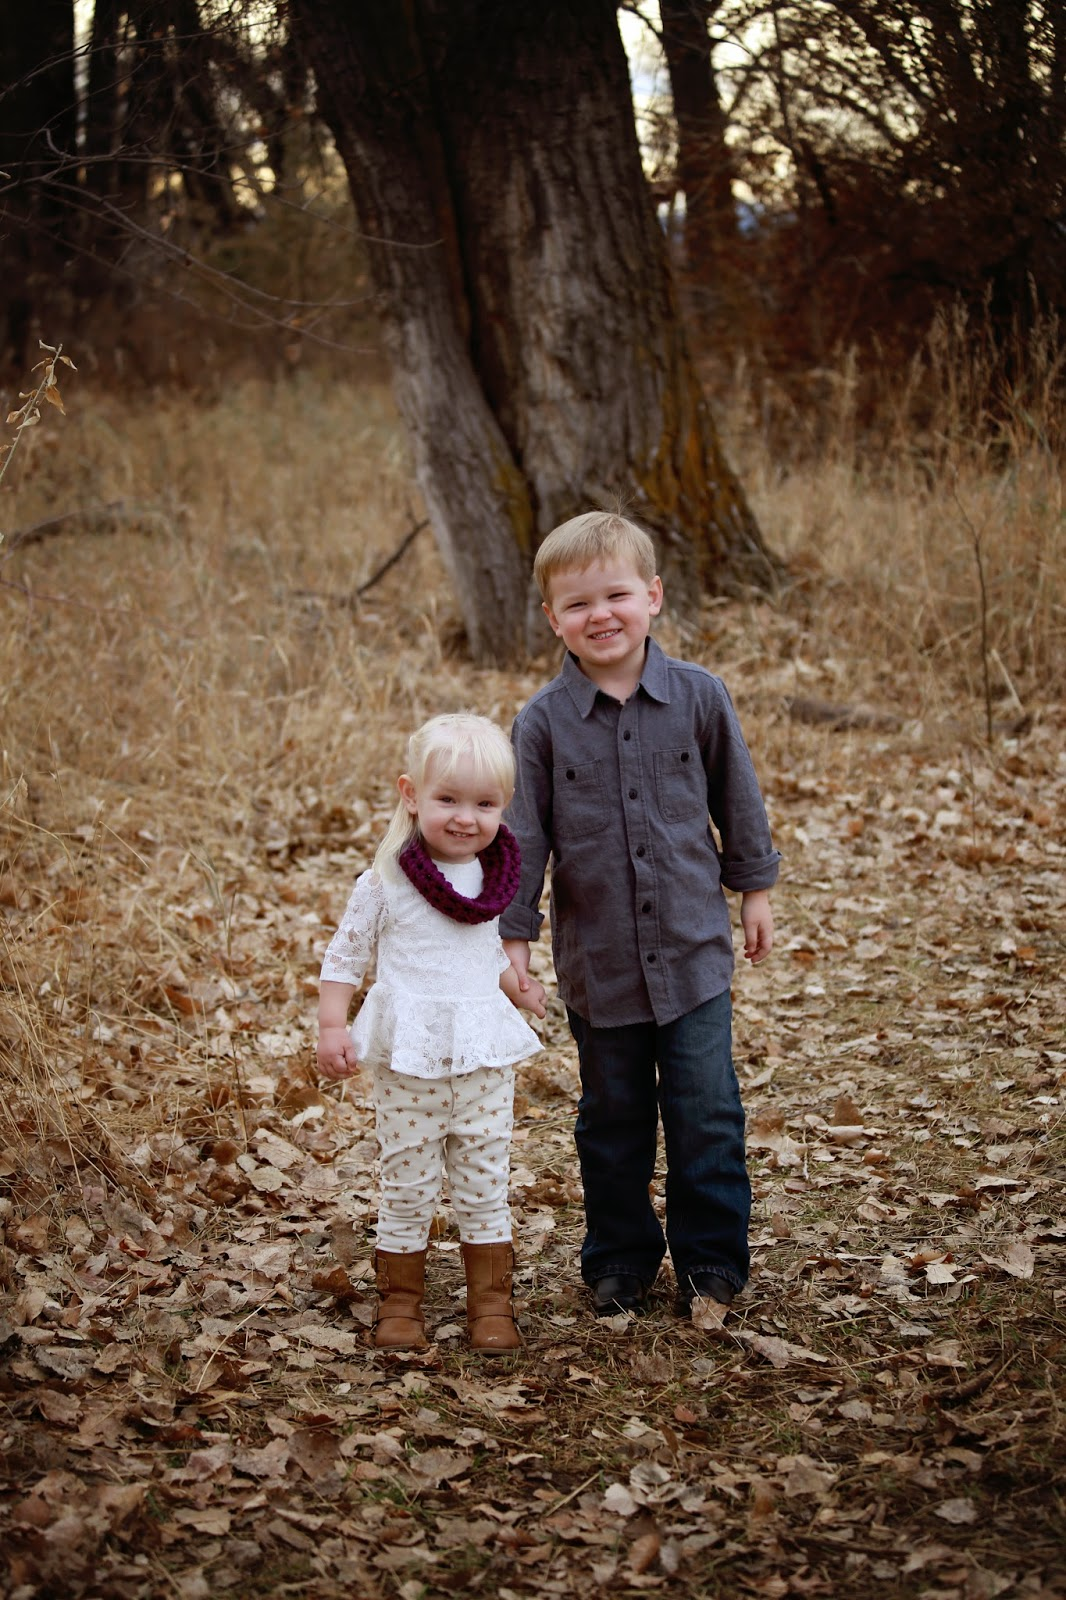 Family picture ideas.  Family photos.  Large family picture ideas.  Colorado photographers.  Krista Haffner Photo Denver Colorado.